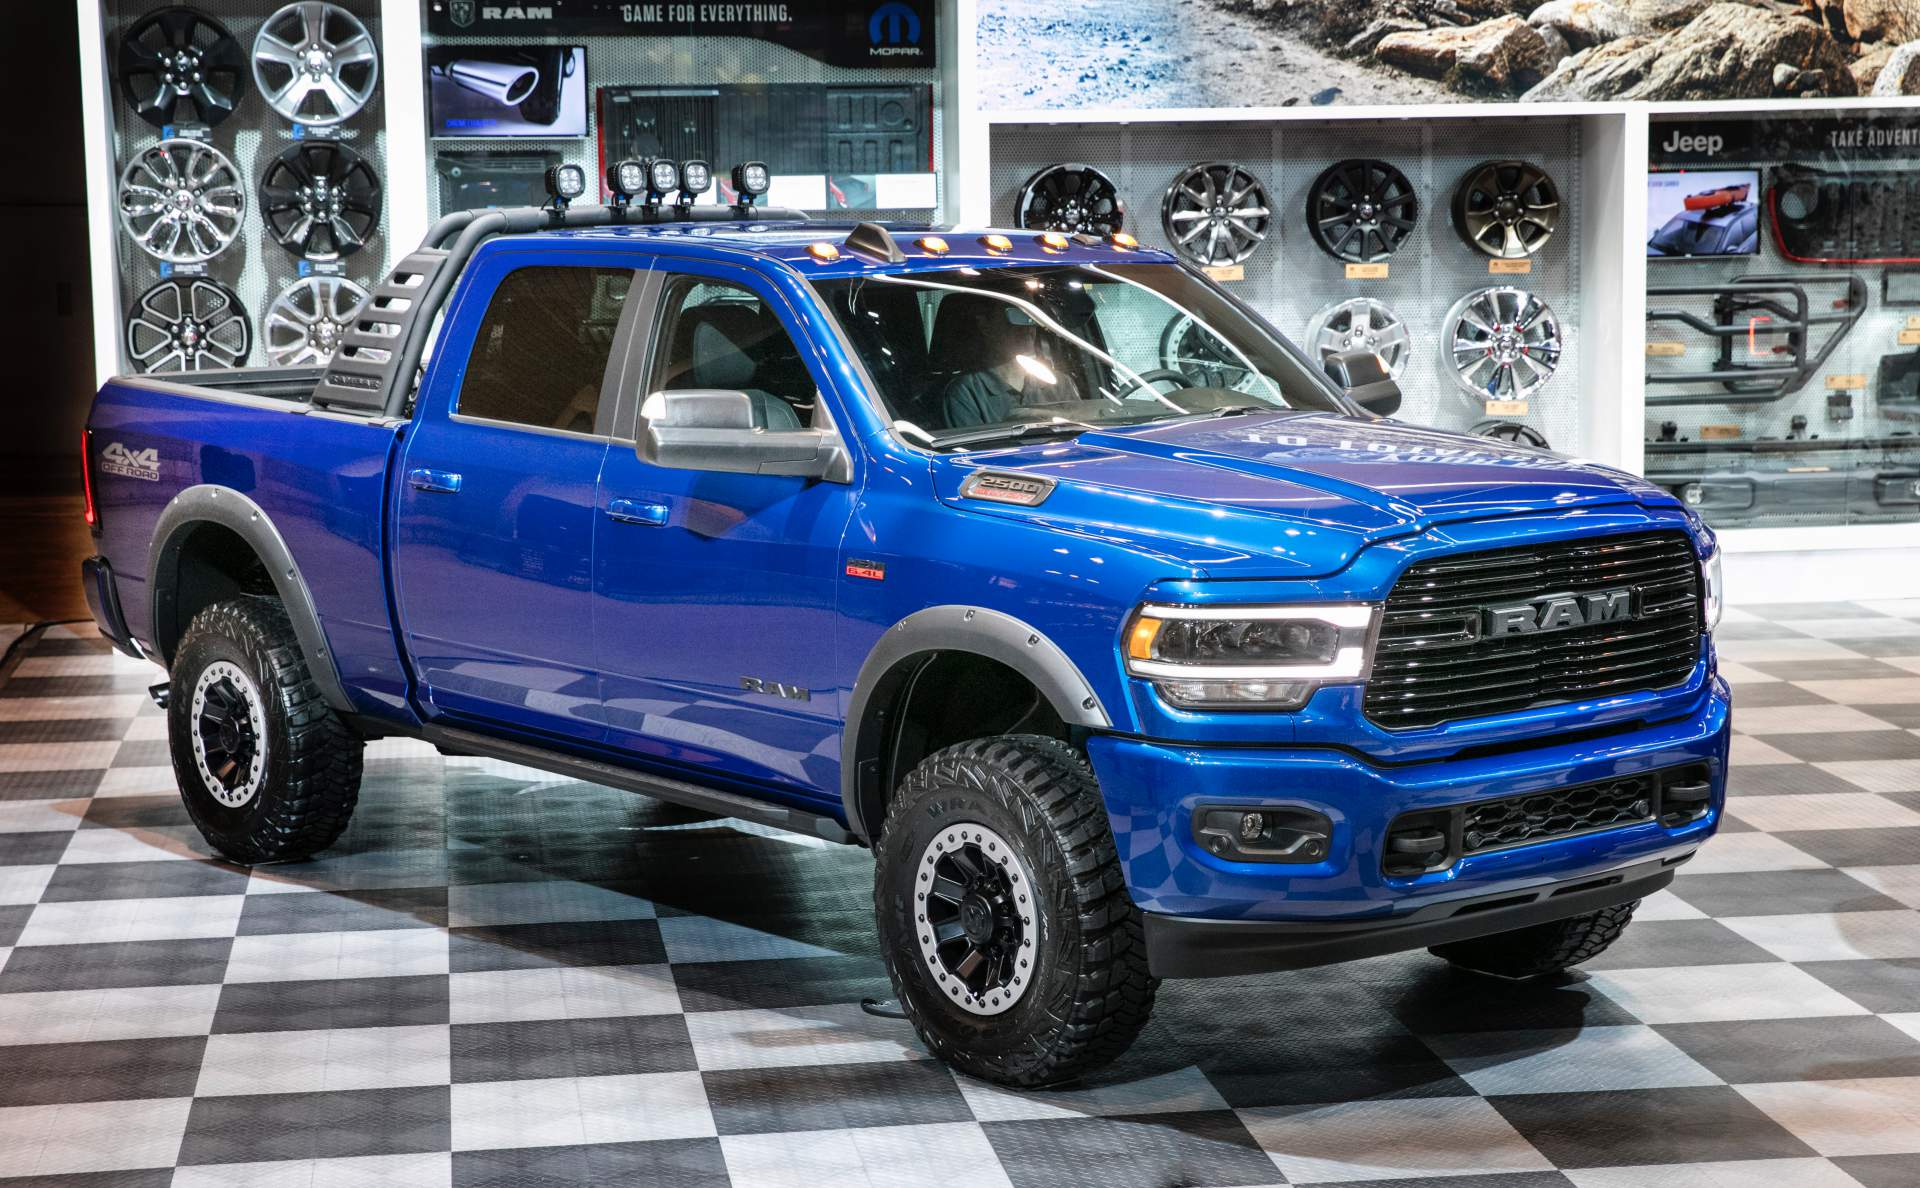 The 2019 Chicago Auto Show proved to be quite a treat for Ram pickup truck lovers